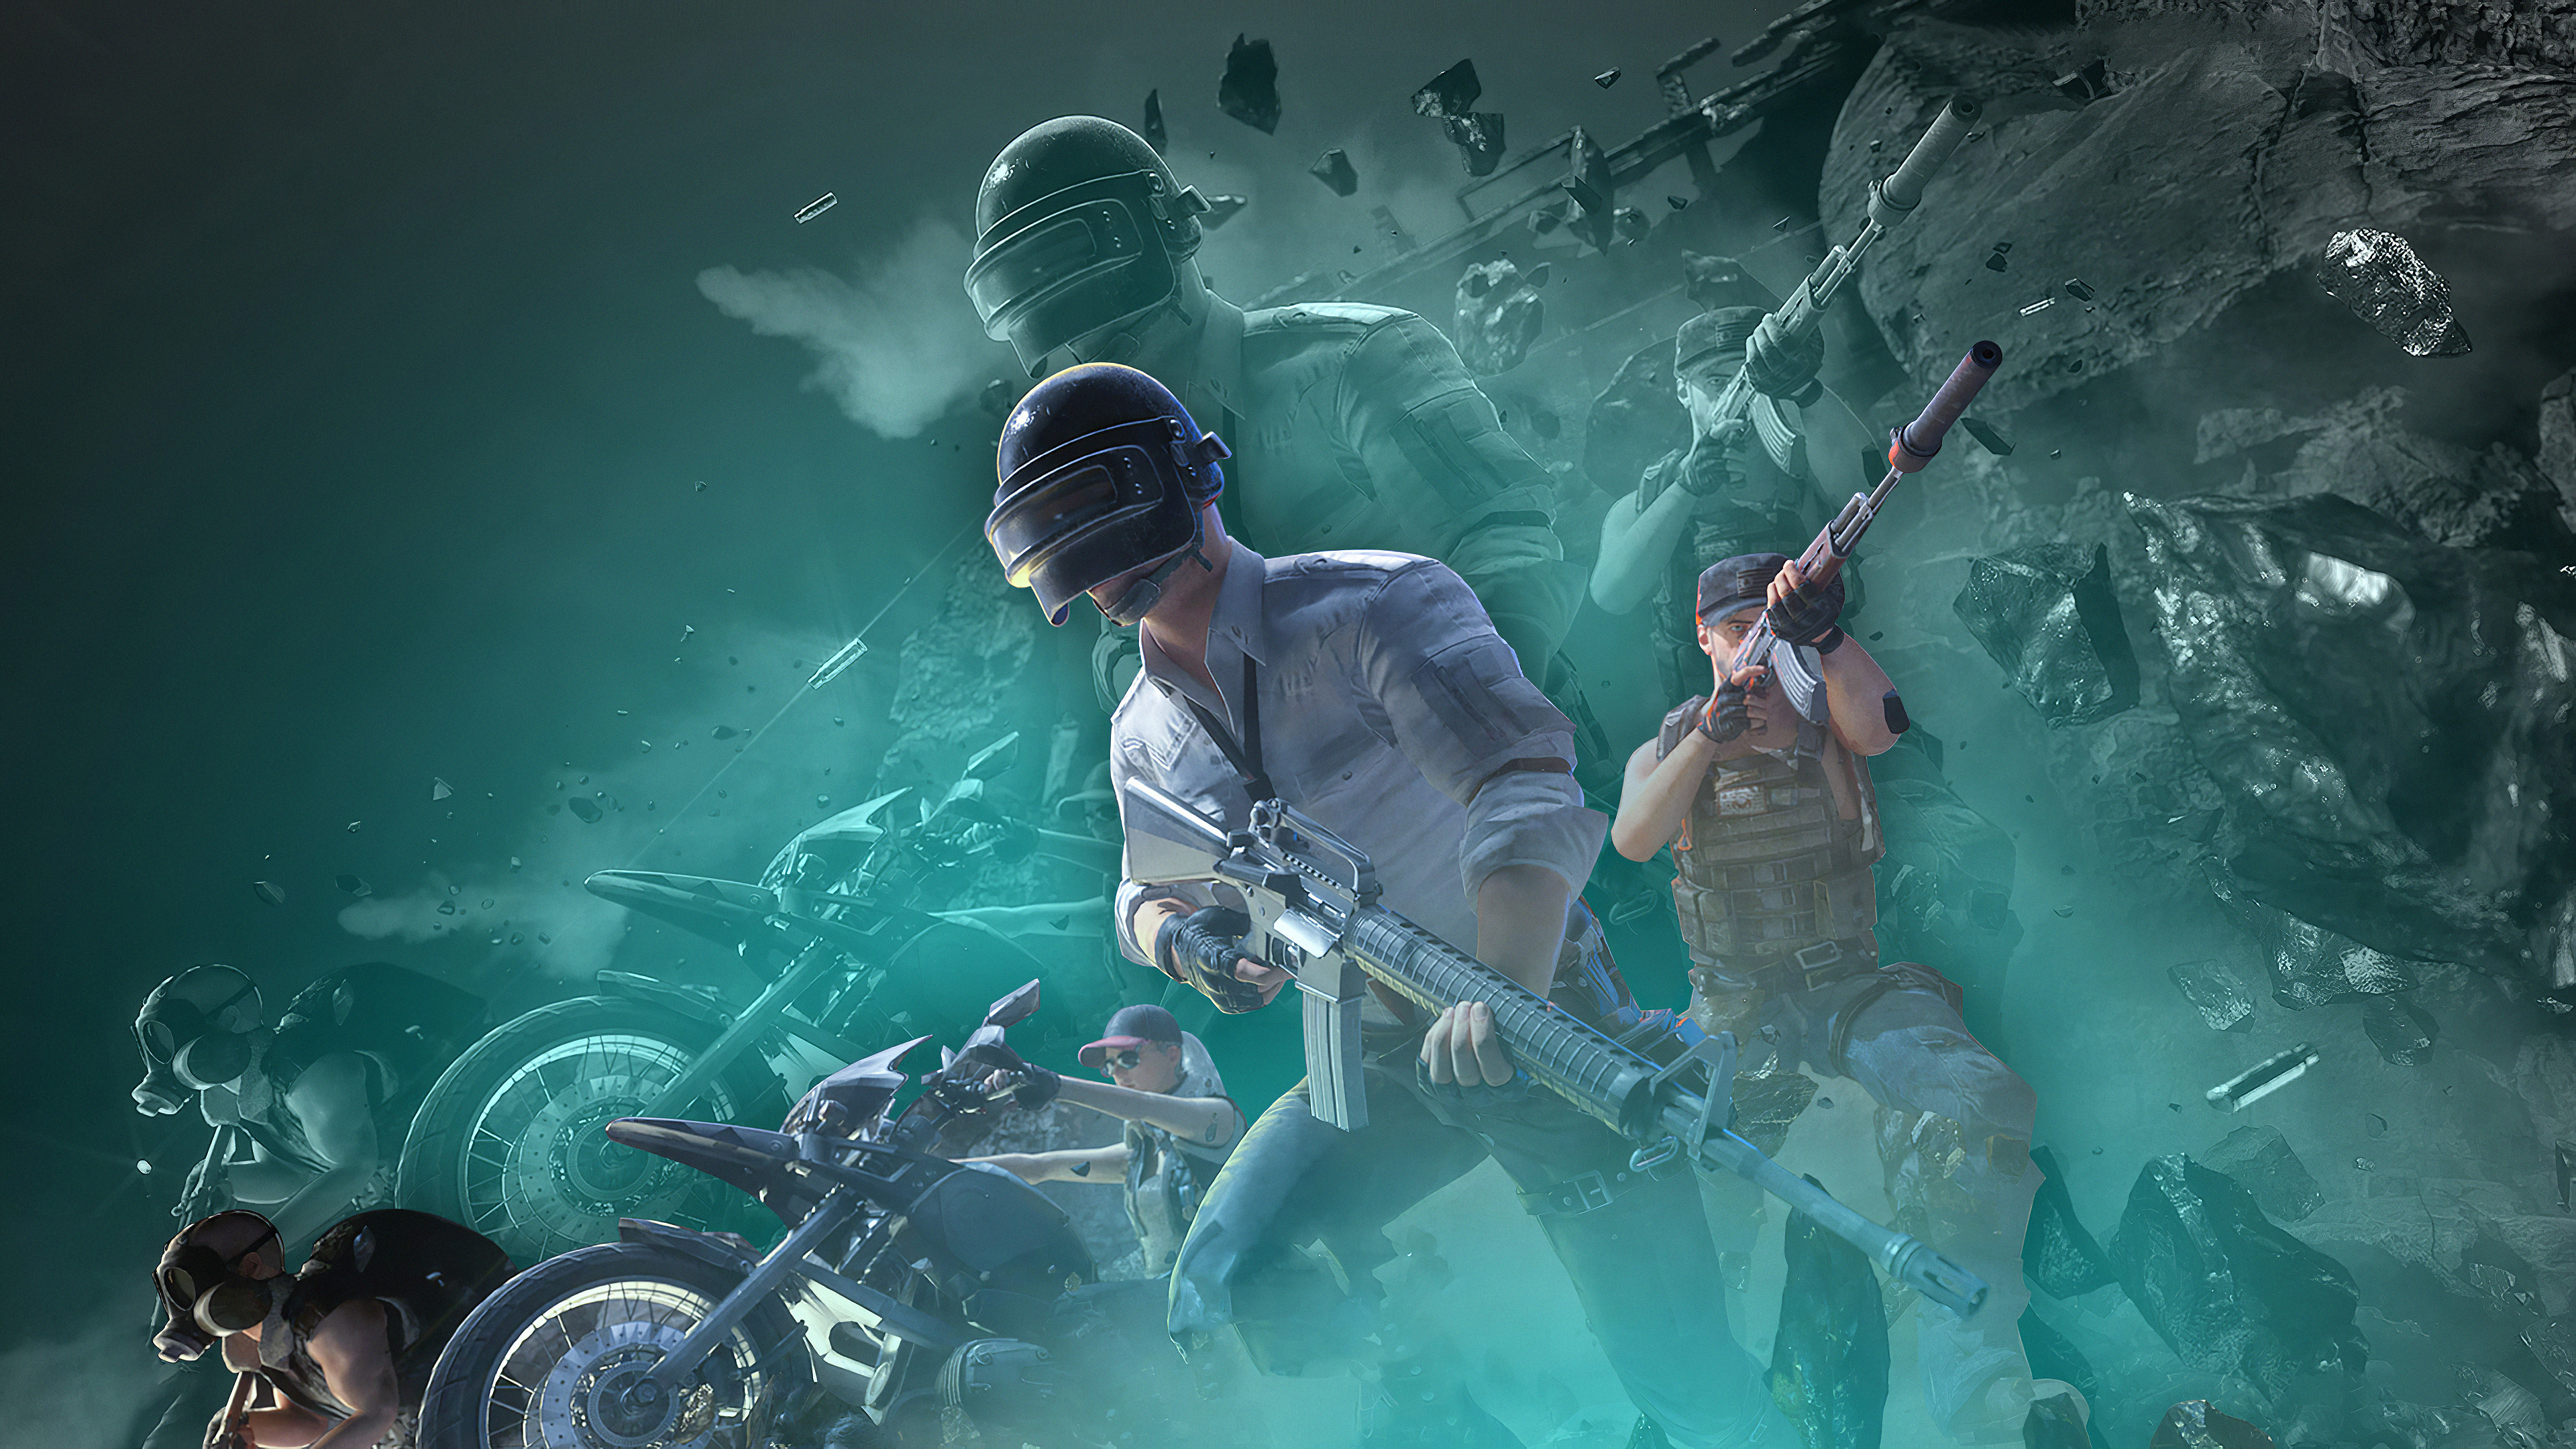 2560x1440 Pubg Mobile Death Race Art 1440p Resolution Wallpaper Hd Games 4k Wallpapers Images Photos And Background